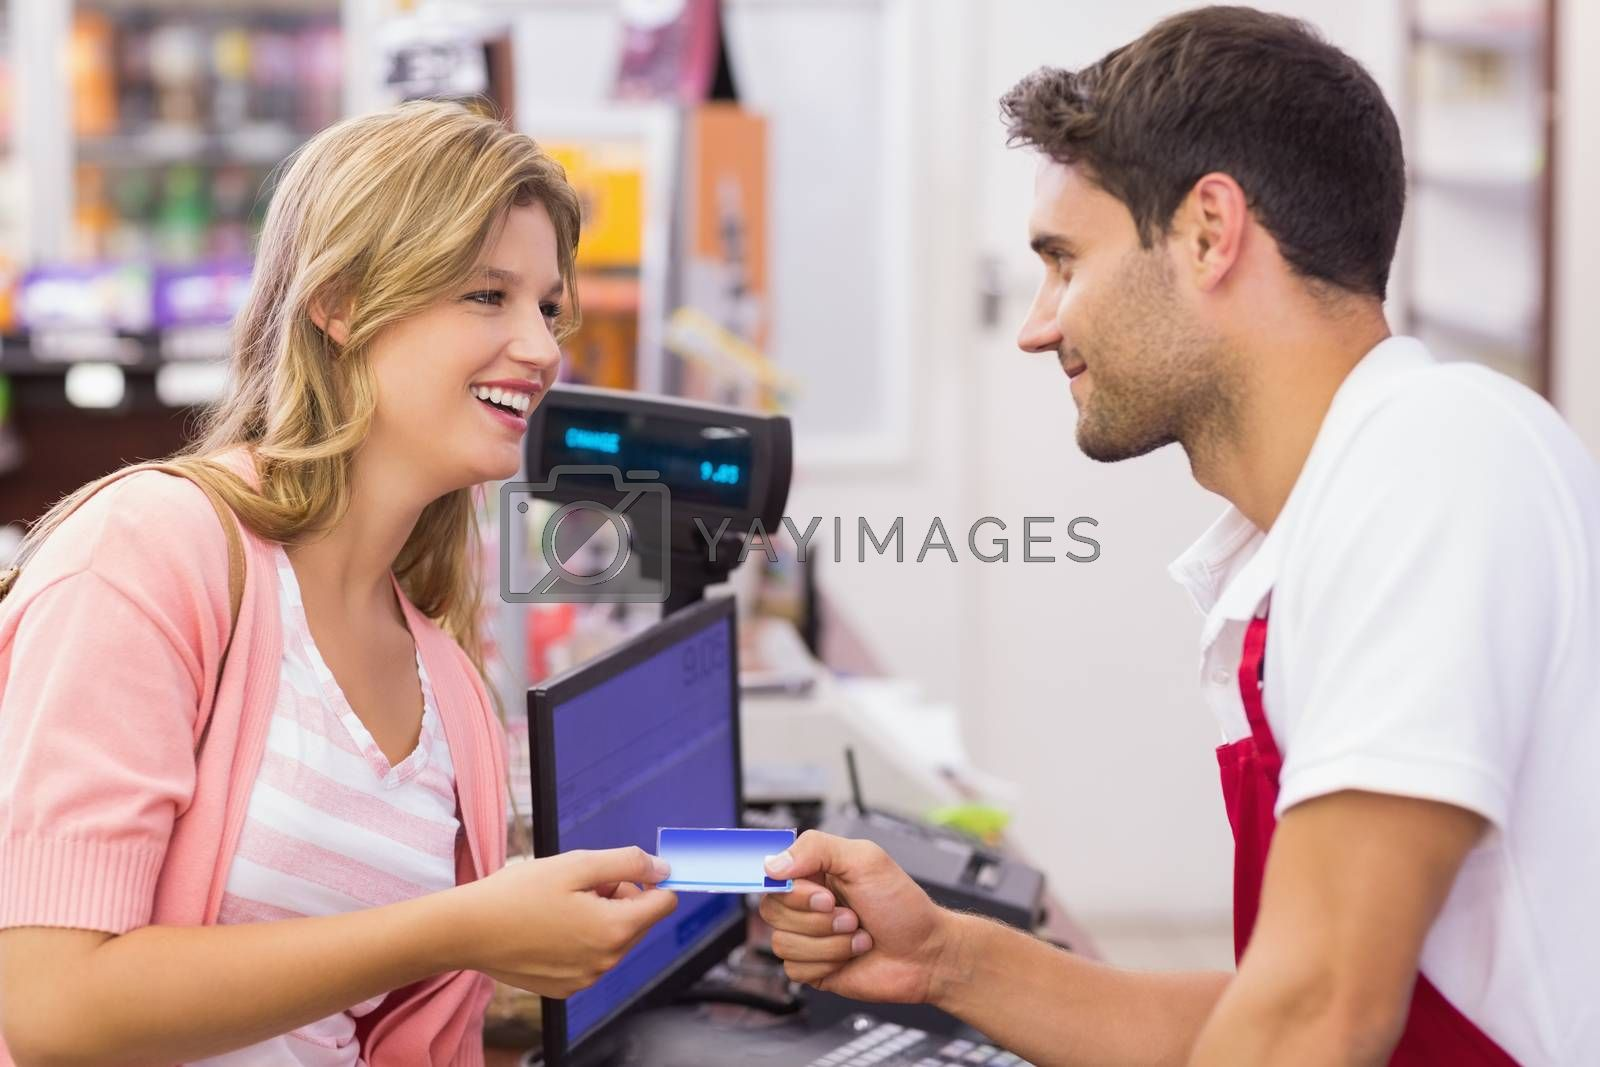 Royalty free image of Smiling woman at cash register paying with credit card by Wavebreakmedia